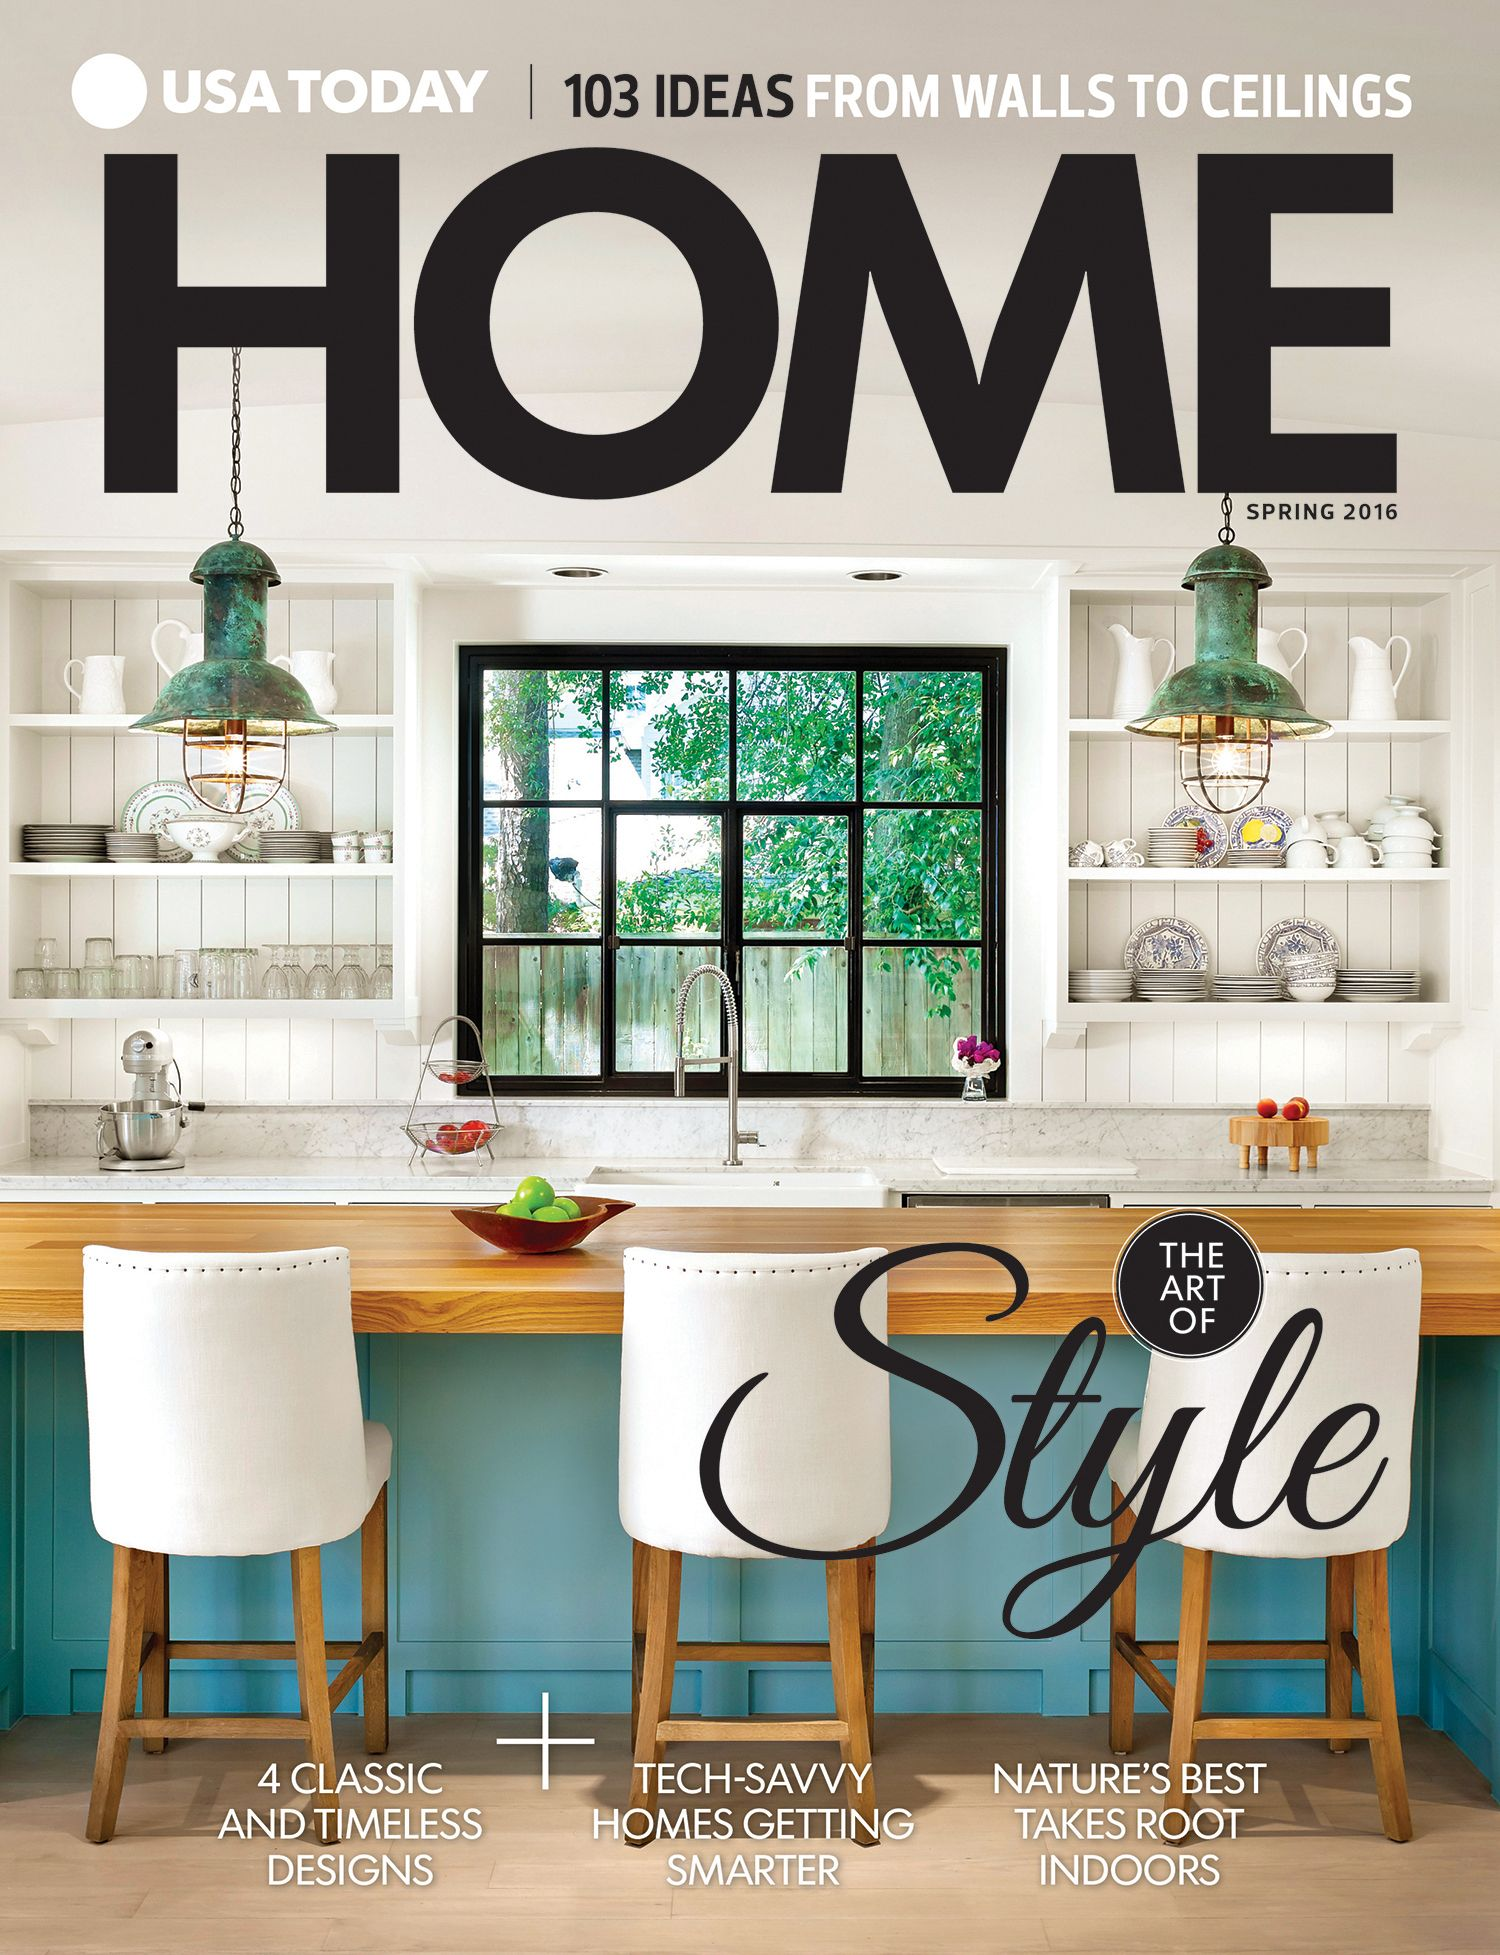 usatodaymags 2016 home magazine cover showcases the home style